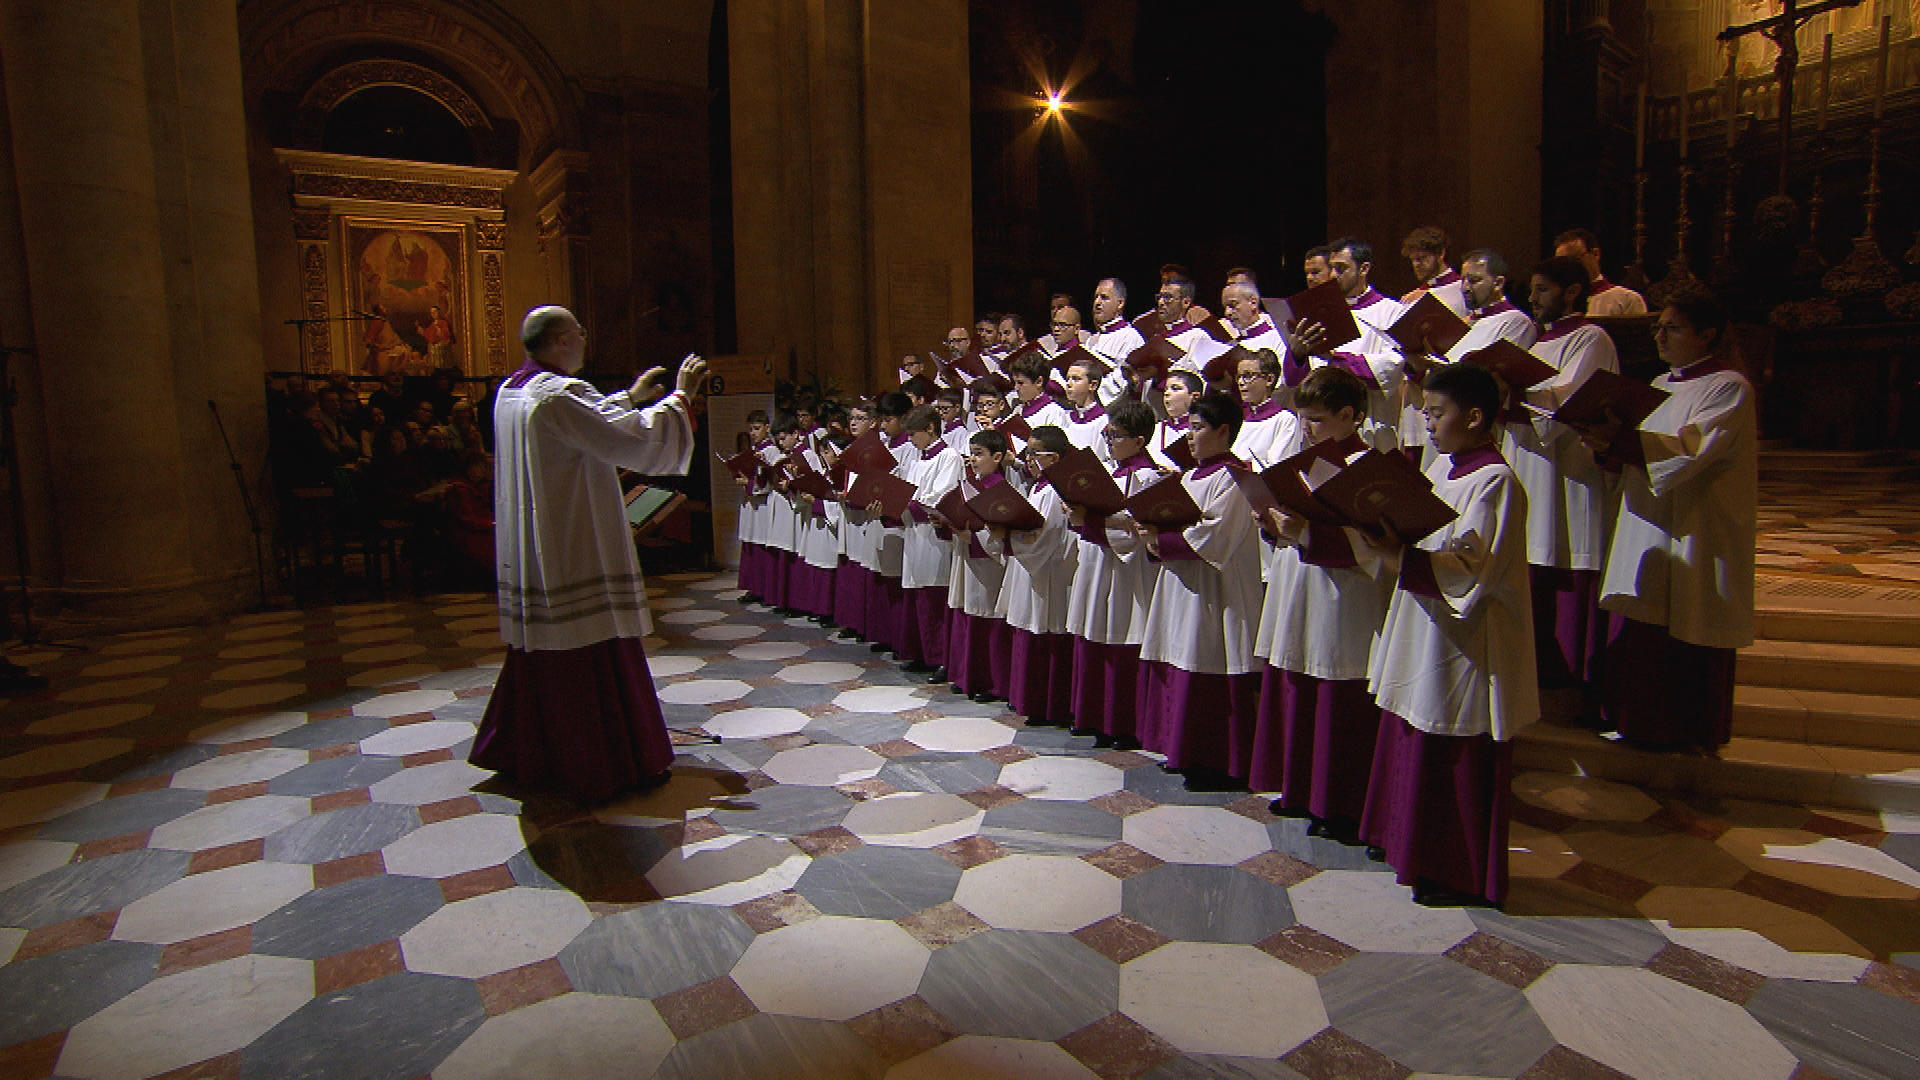 Where Is Charlie Rose Today >> The Pope's Choir - CBS News